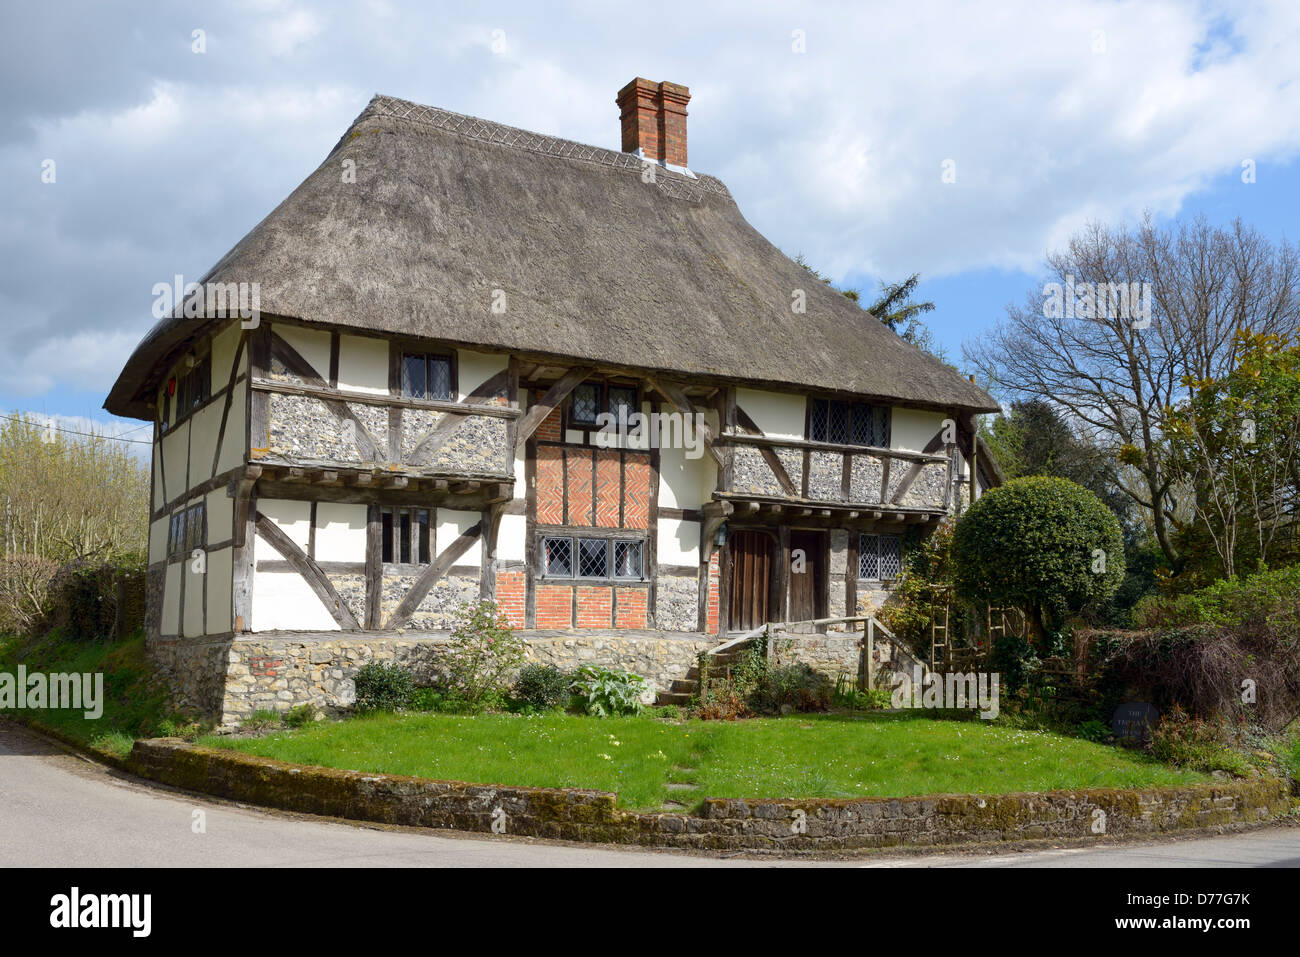 Medieval Thatched Cottage Stock Photos Amp Medieval Thatched